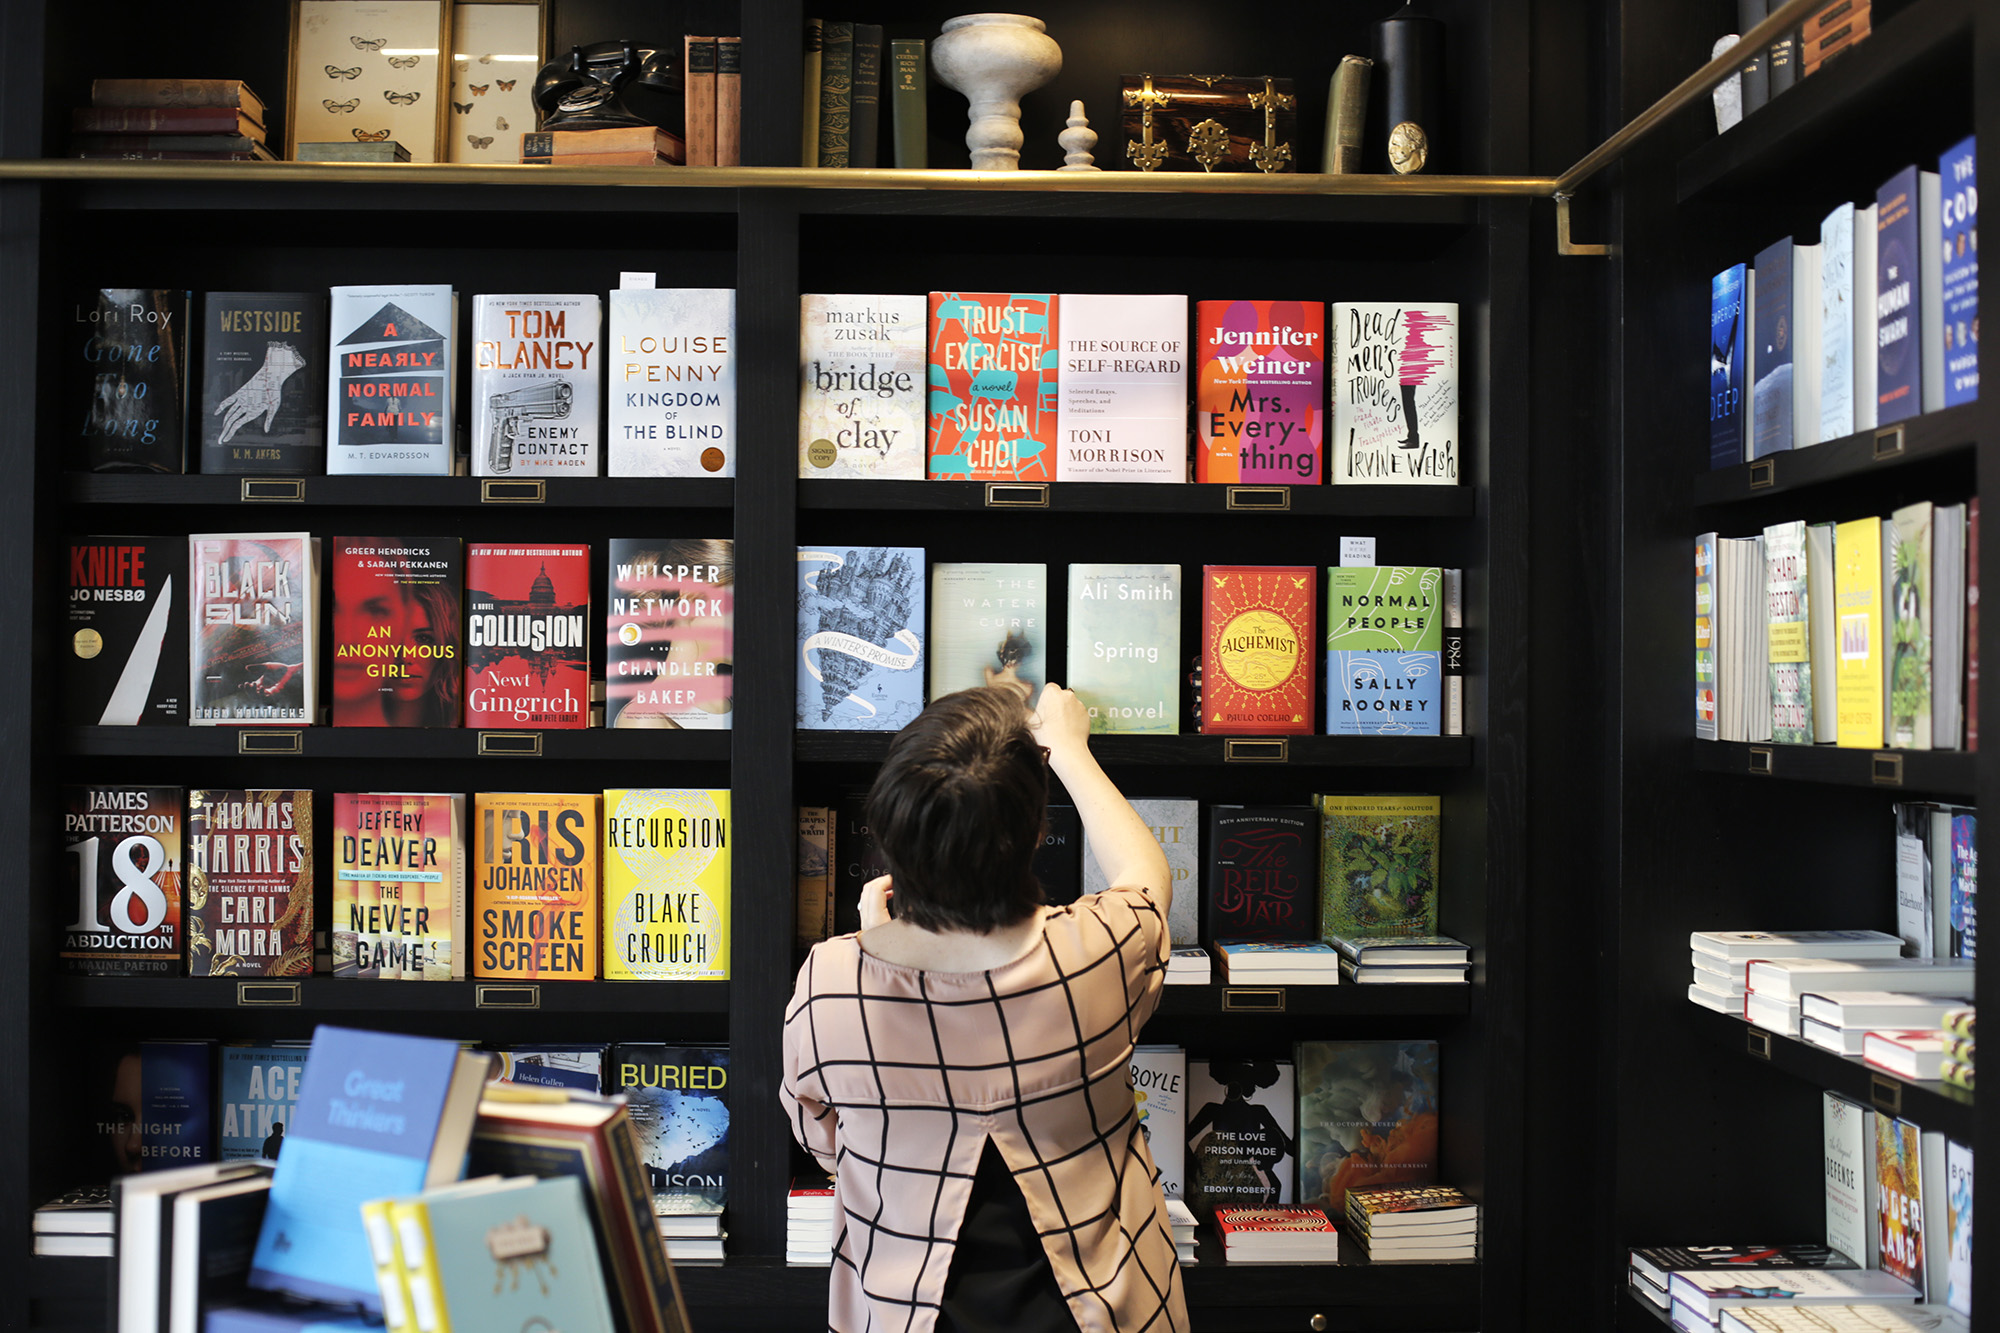 20 great independent book stores in Tampa Bay